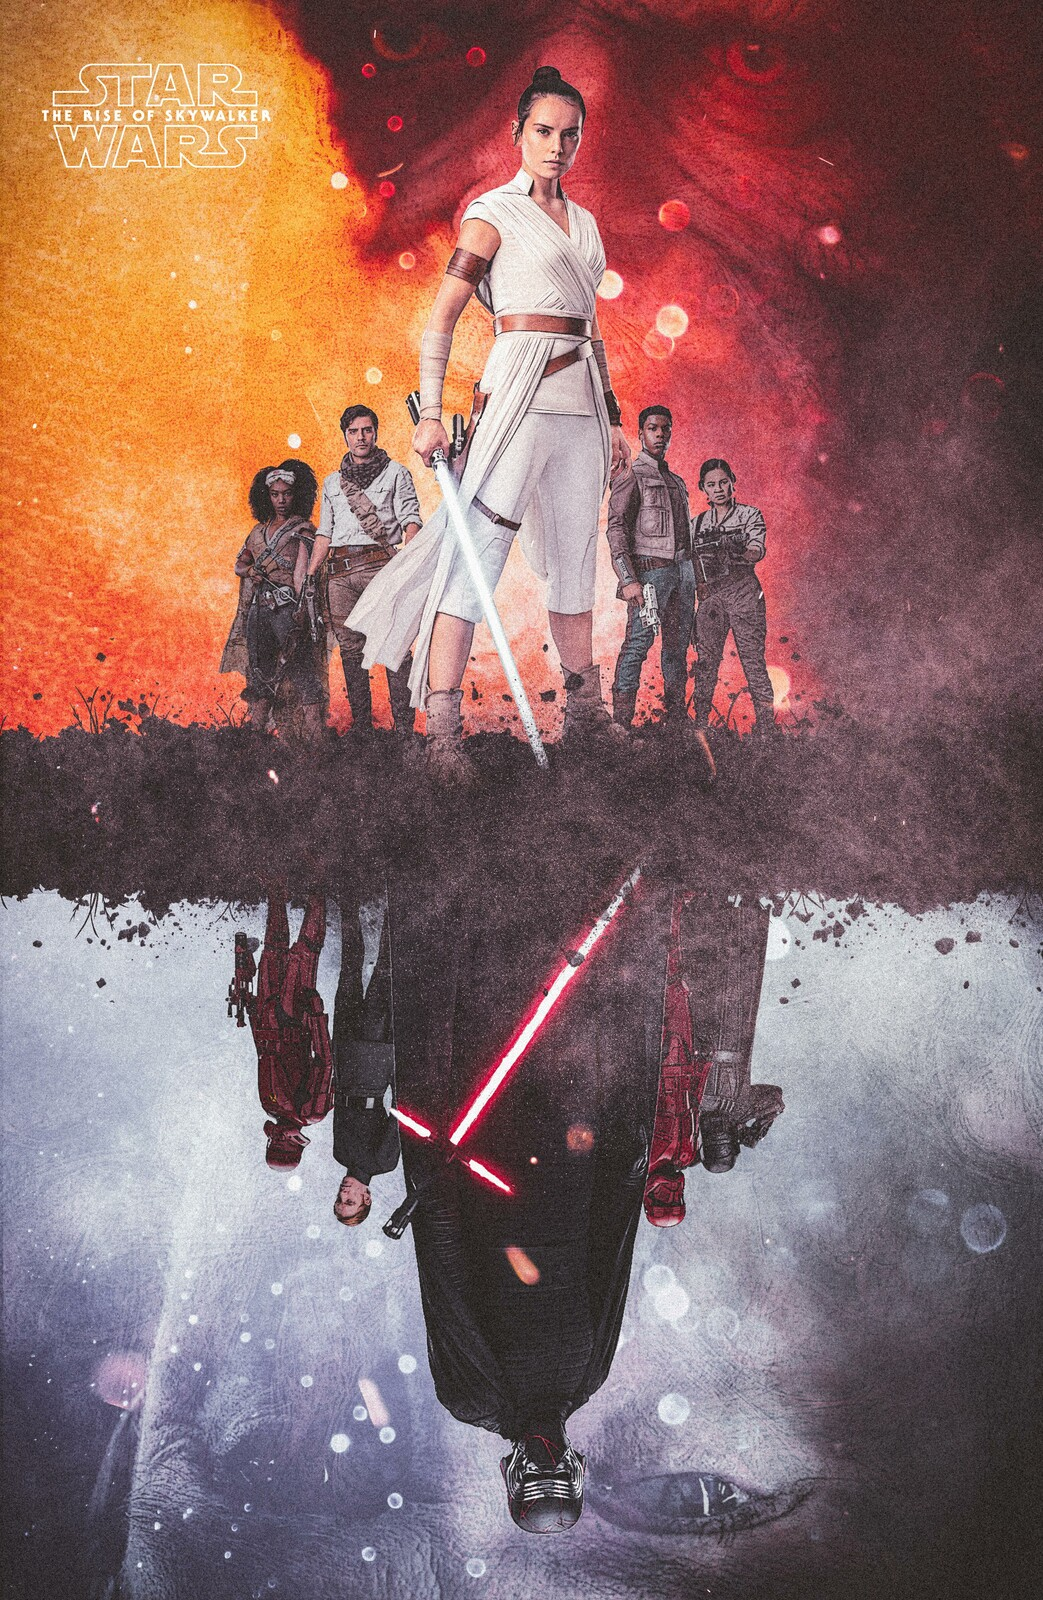 Star Wars The Rise Of Skywalker Alternate Movie Poster - Neemz, The Movie Poster Guy